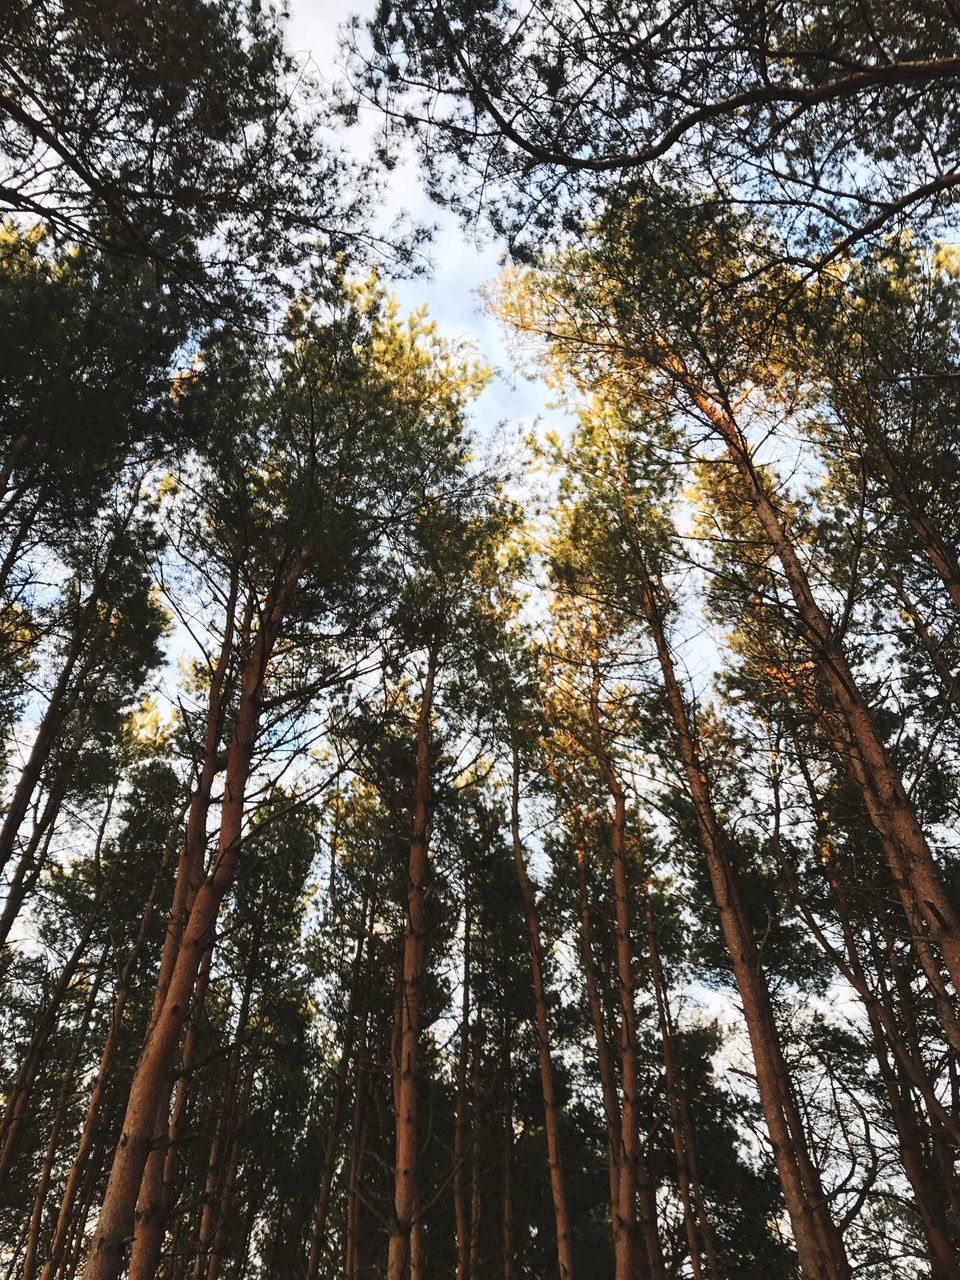 tree, tree trunk, low angle view, nature, forest, growth, beauty in nature, tall - high, tranquility, day, outdoors, scenics, no people, tranquil scene, woodland, branch, sky, bamboo grove, tall, bamboo - plant